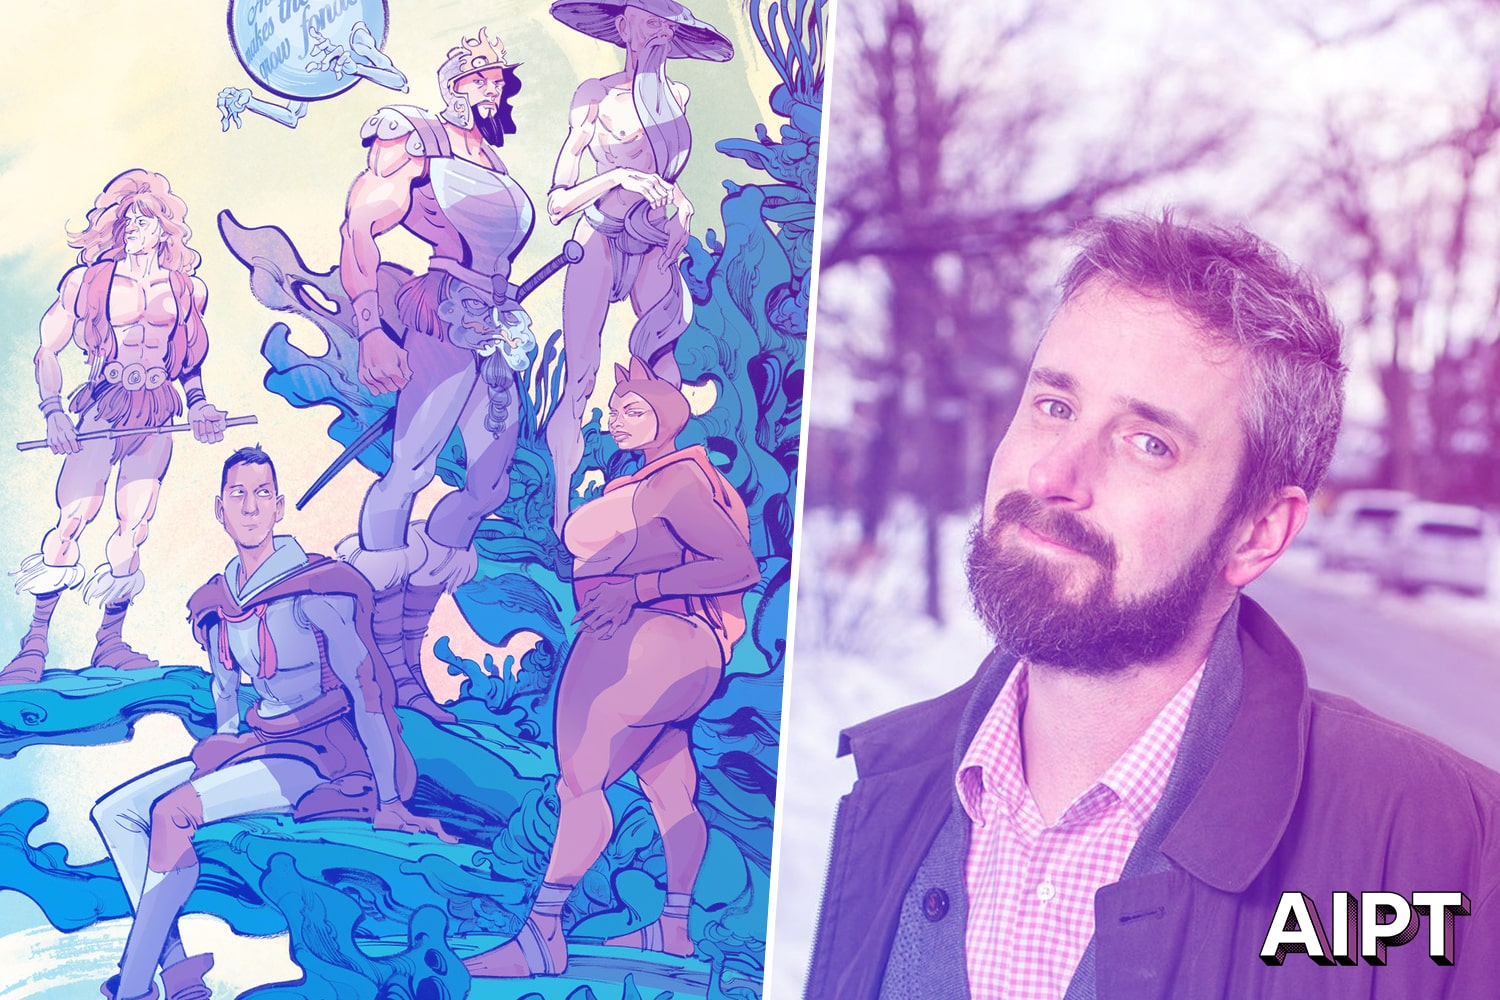 Chip Zdarsky on the freedoms of Substack and his future in comics